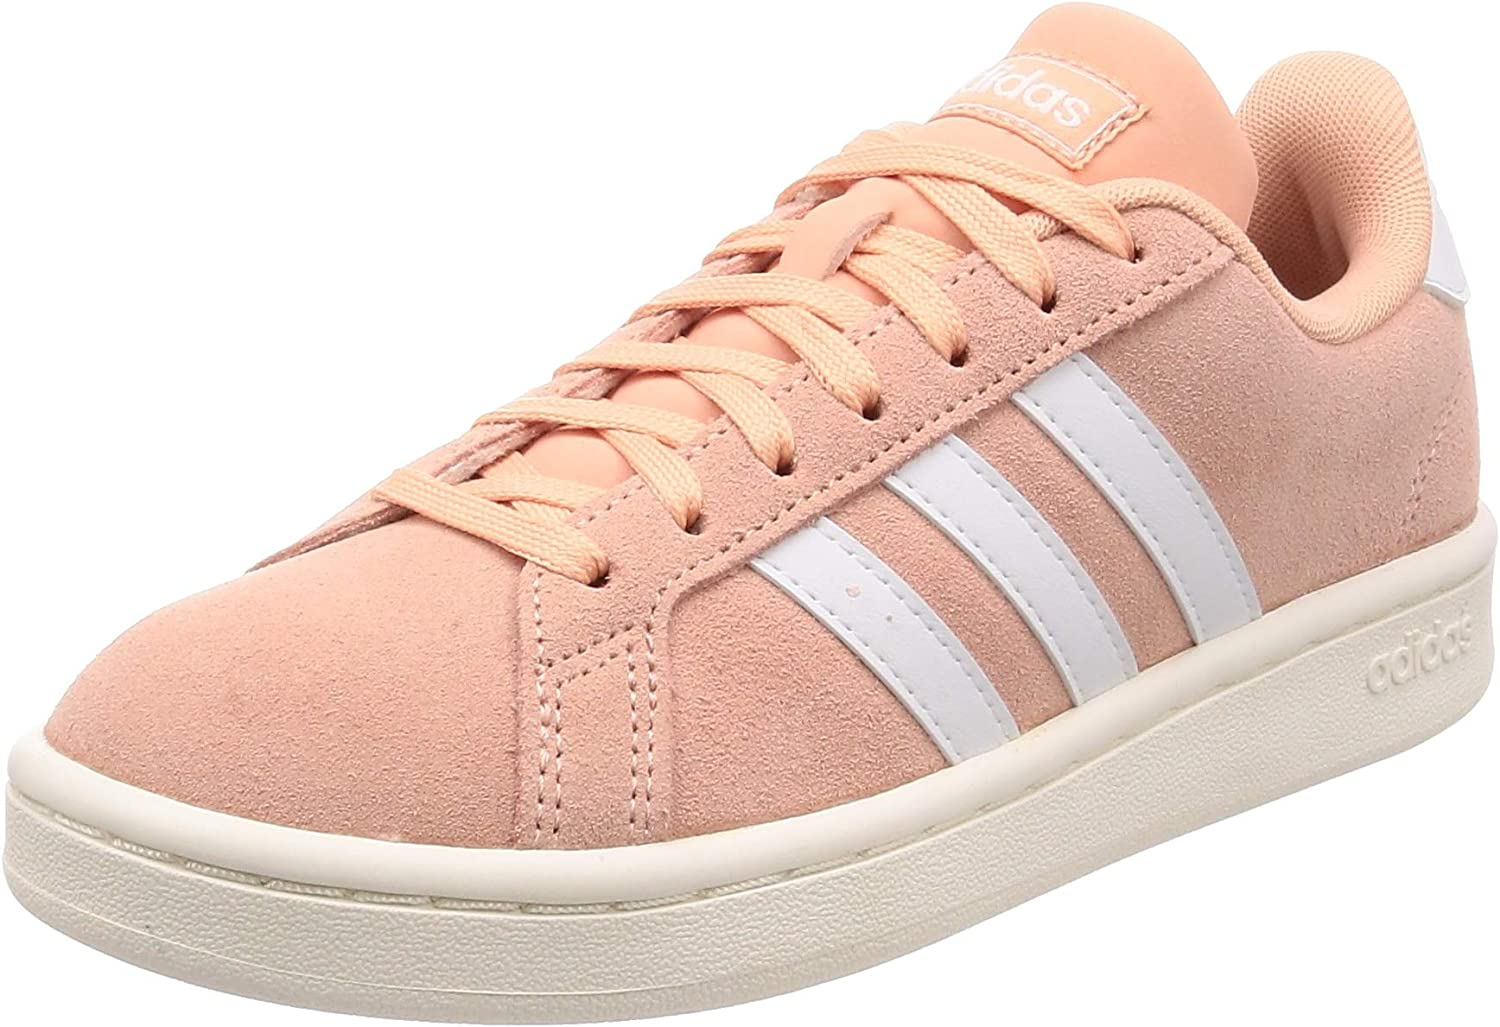 Adidas Damen Grand Court Fitnessschuhe